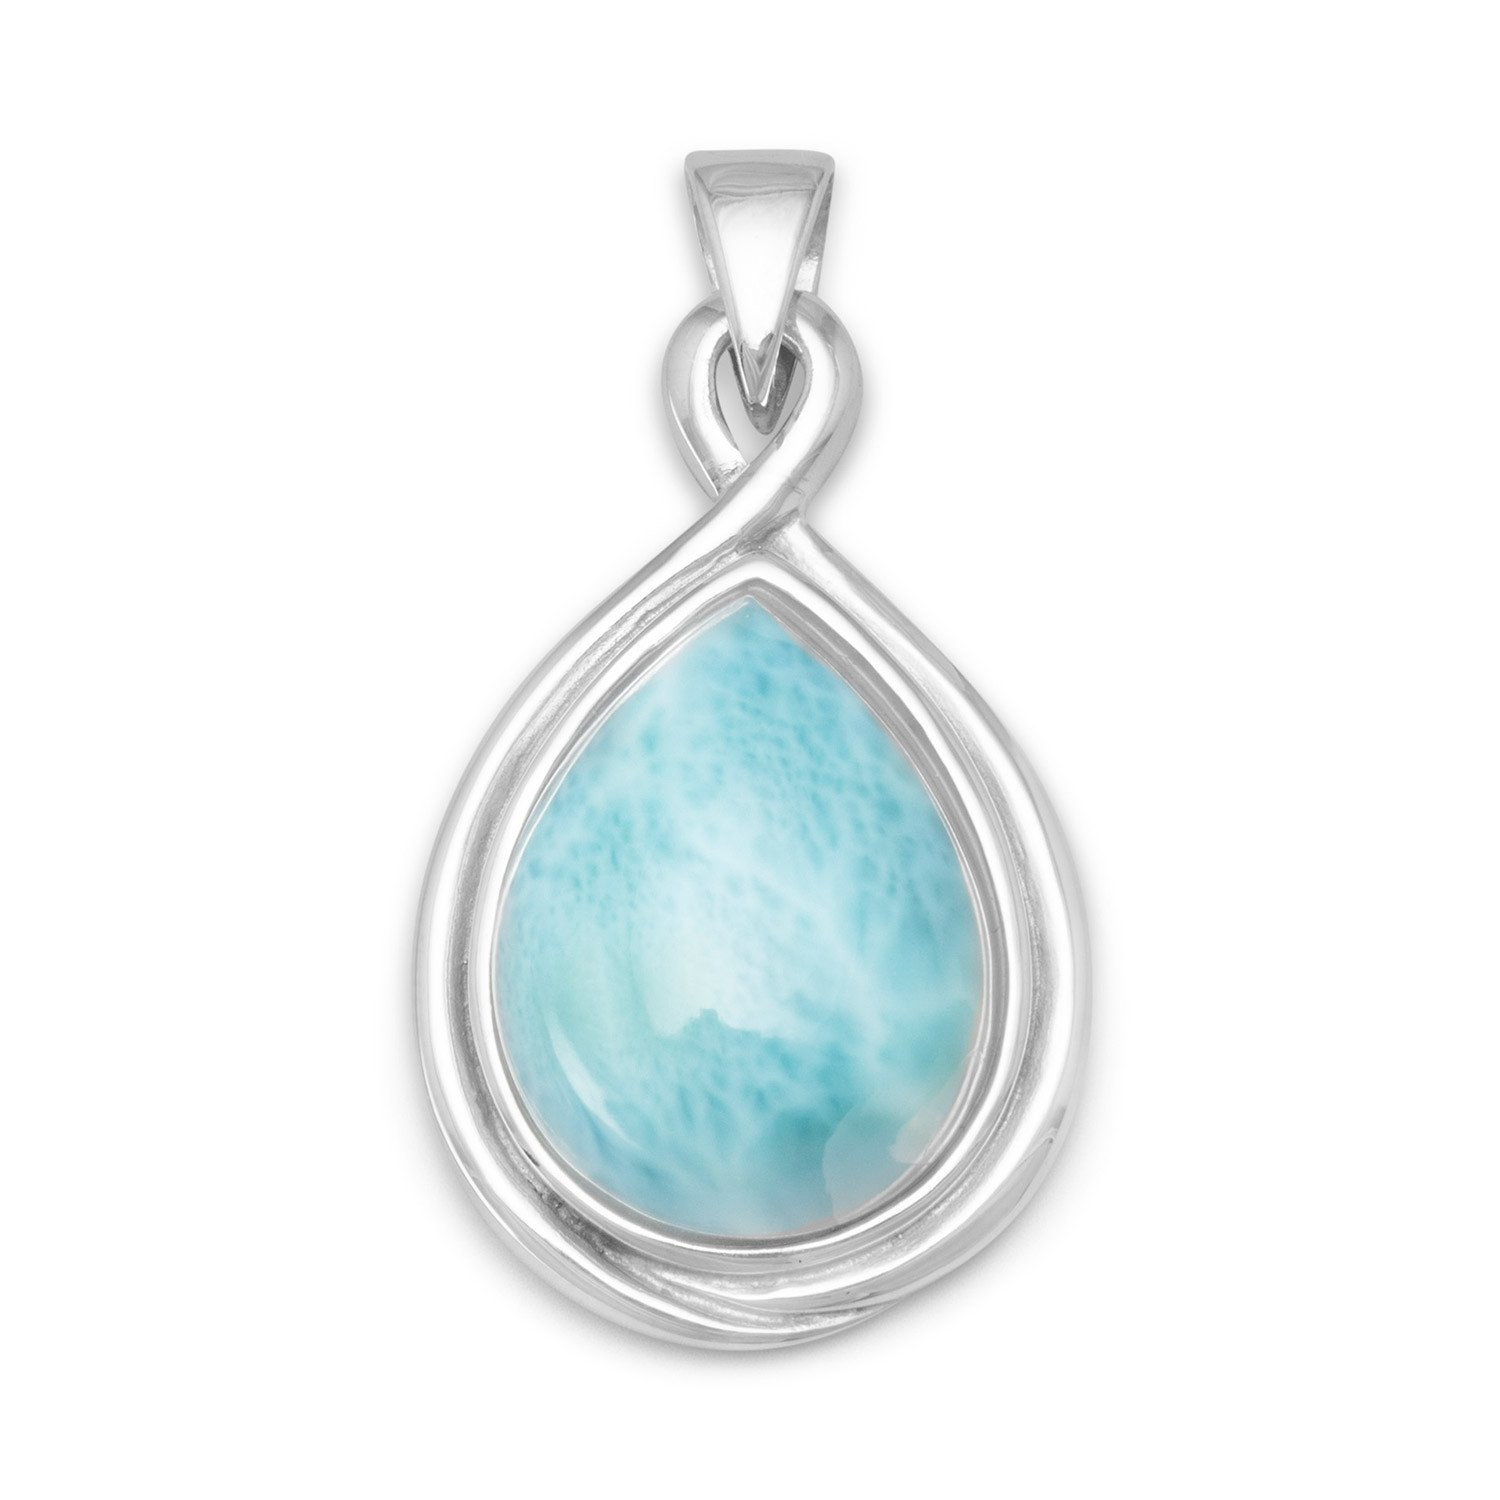 Rhodium Plated Pear Shape Larimar Pendant